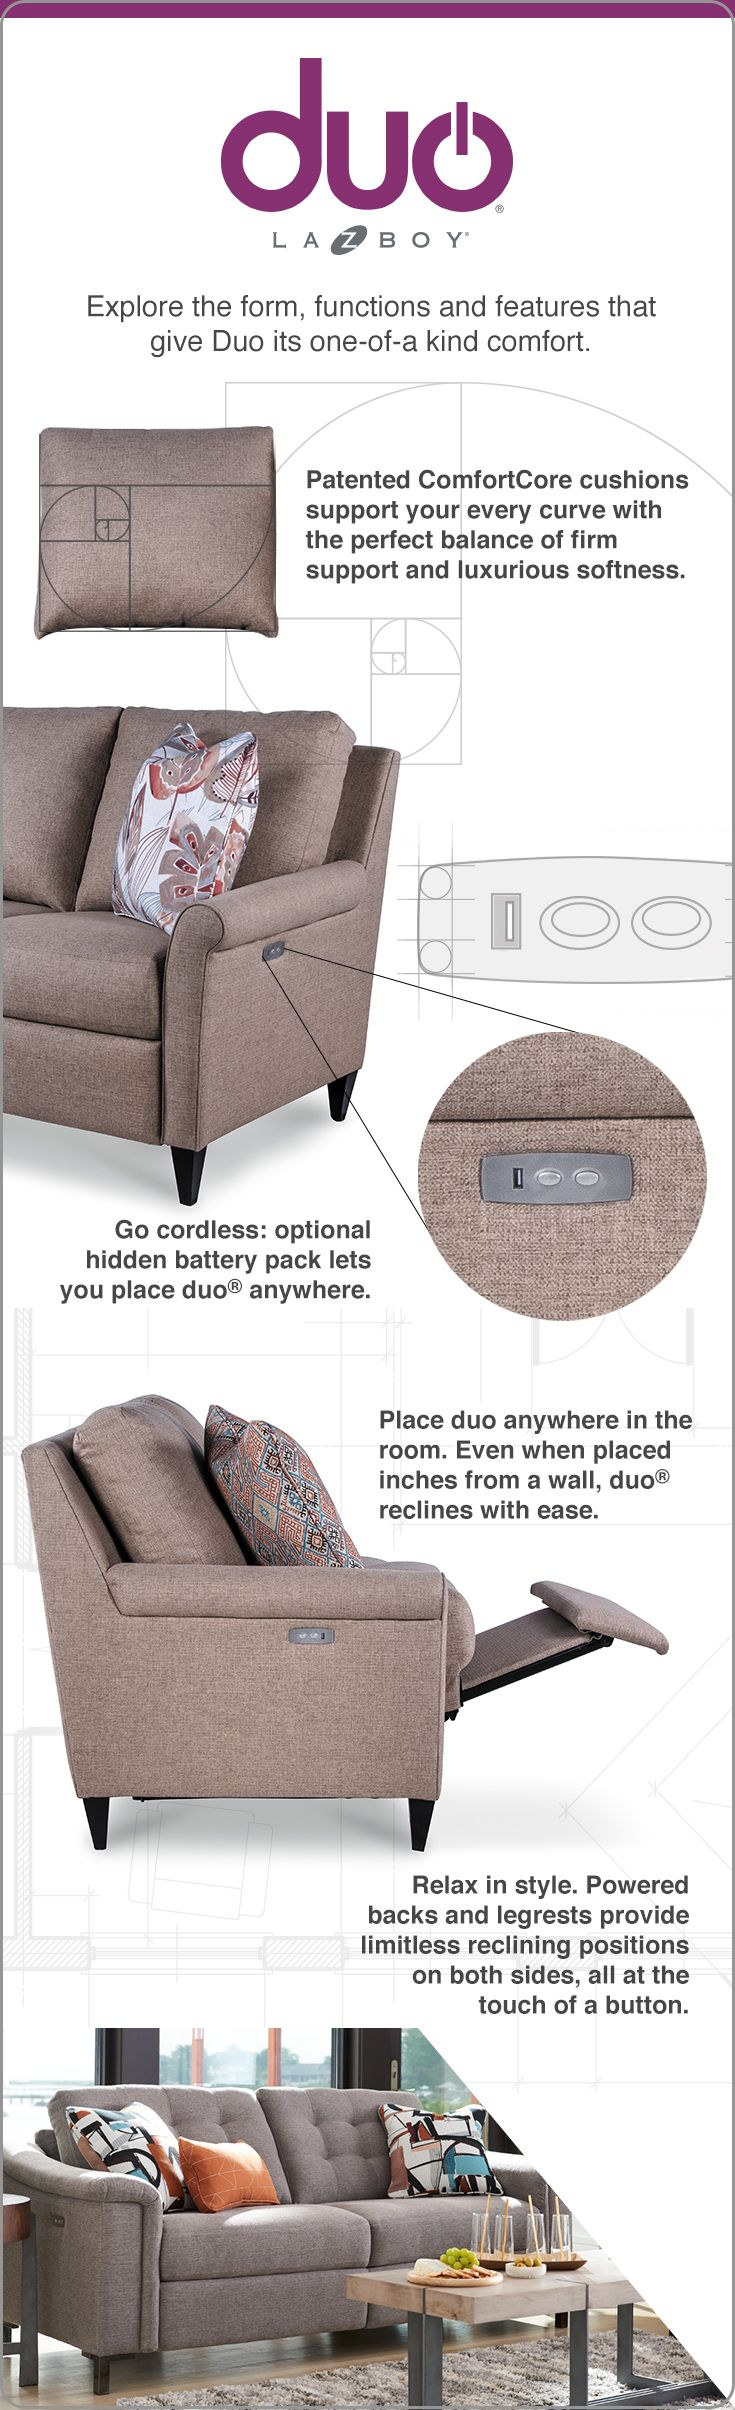 The Key To A Restful Sit The 3 R S Relaxing Reclining And Recharging Luckily For You Duo Does Small Living Room Furniture Furniture Living Room Furniture